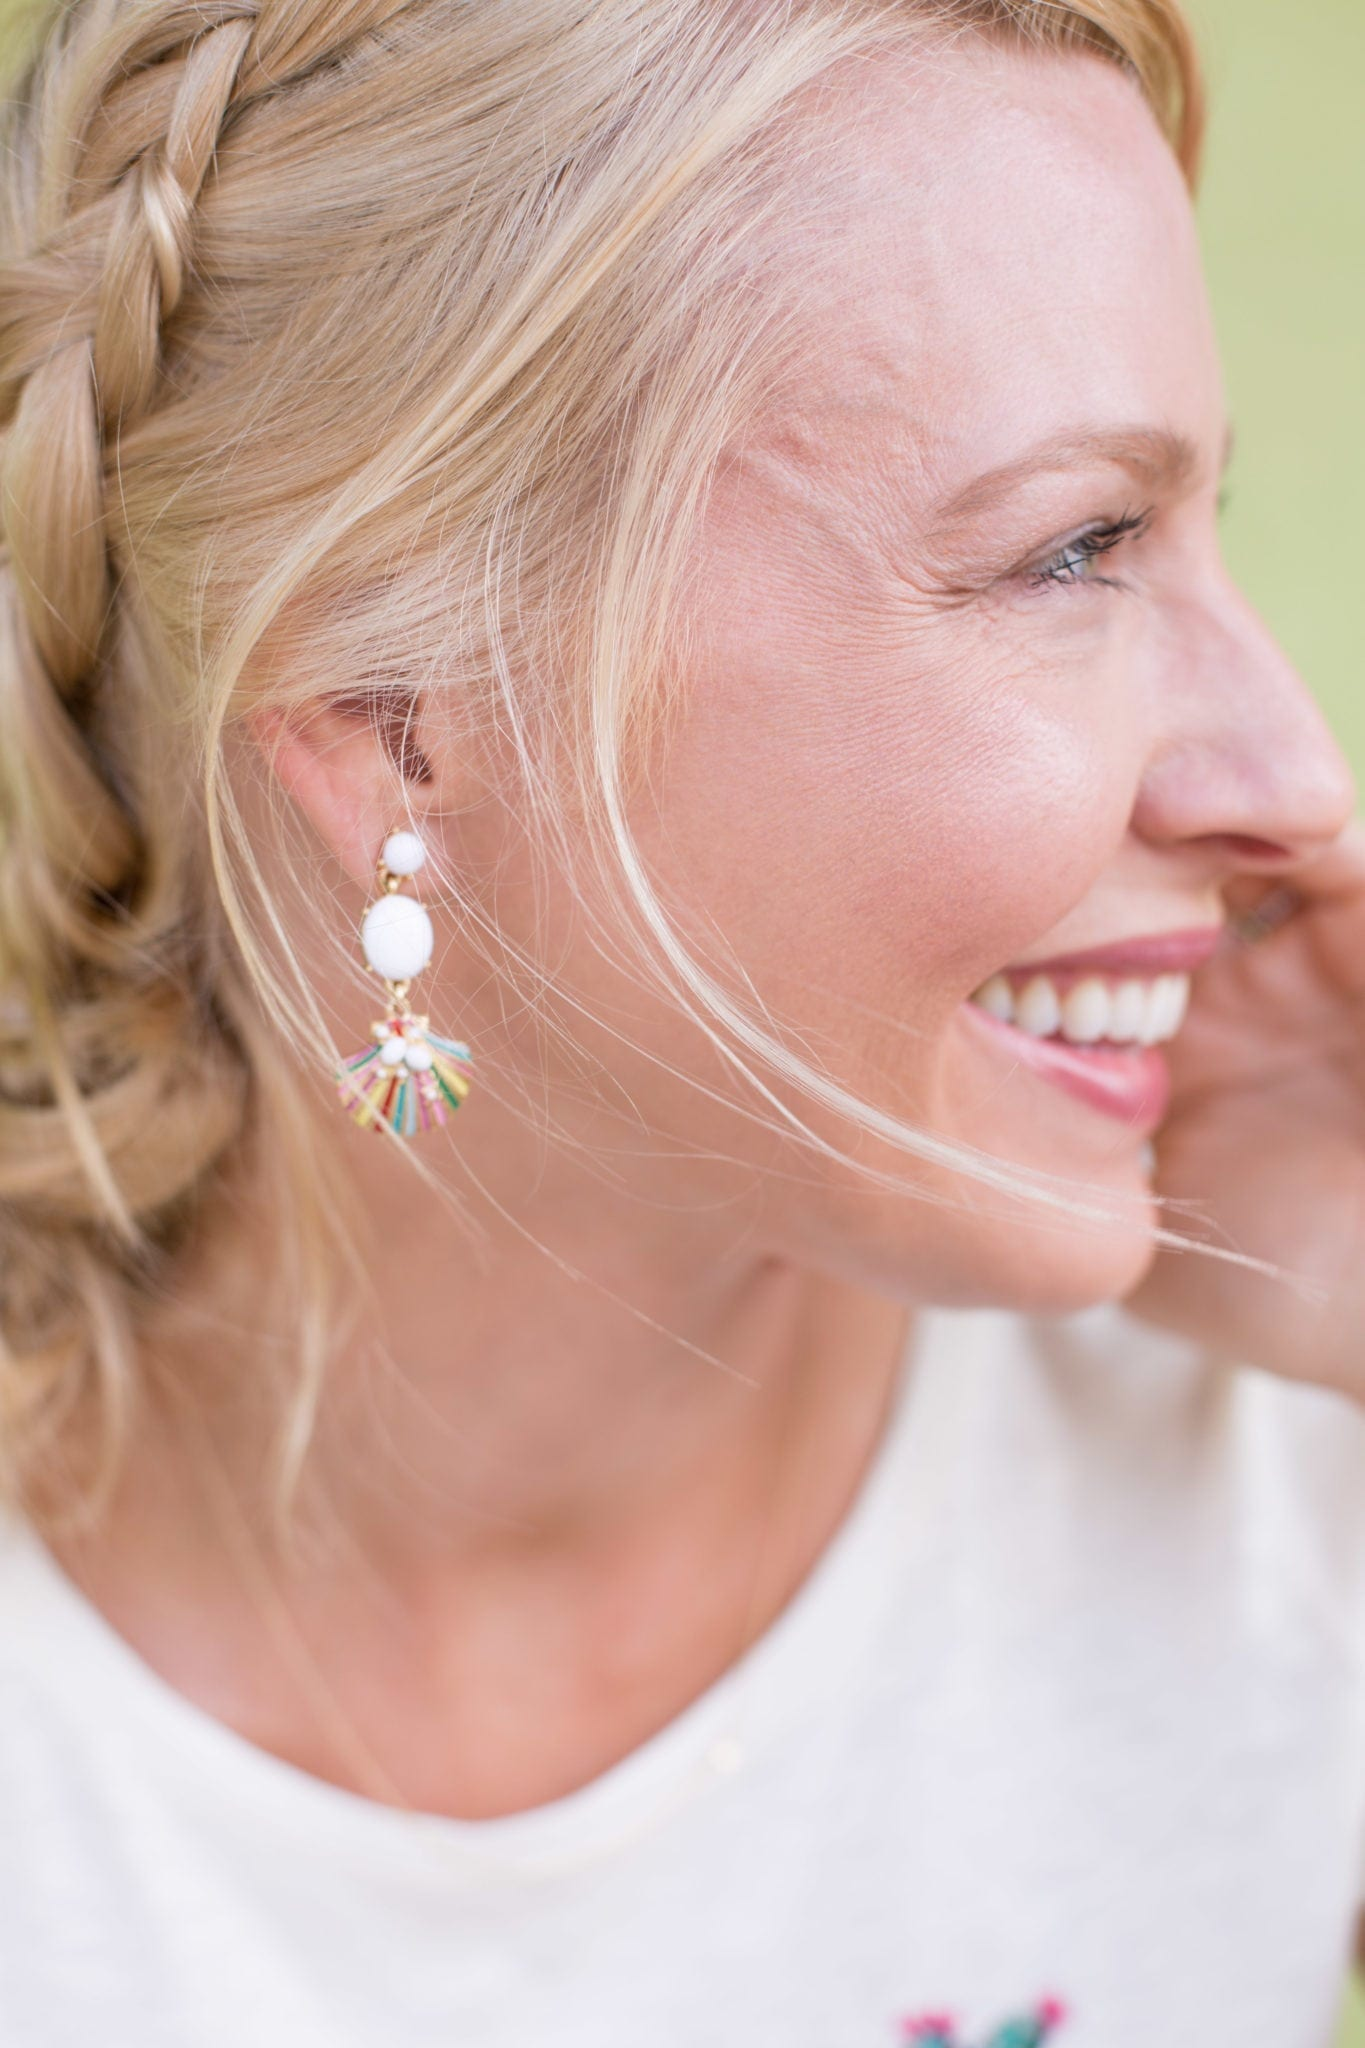 Summer earrings in white and shell design